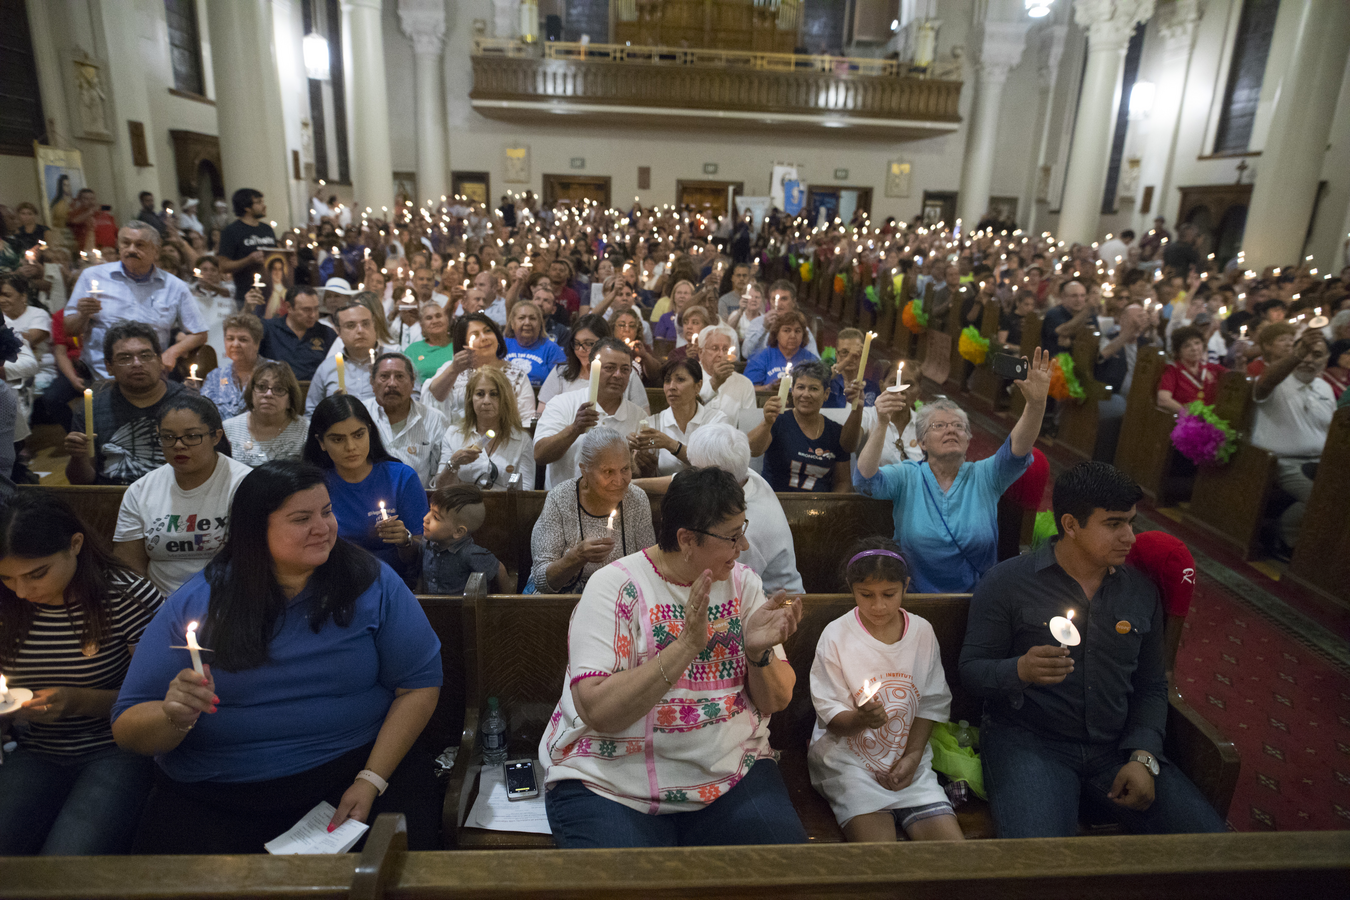 Worshippers attend a candlelight vigil on July 20 at St.Patrick's Cathedral in El Paso, Texas, following an immigration march and rally. (CNS photo/Jorge Salgado)